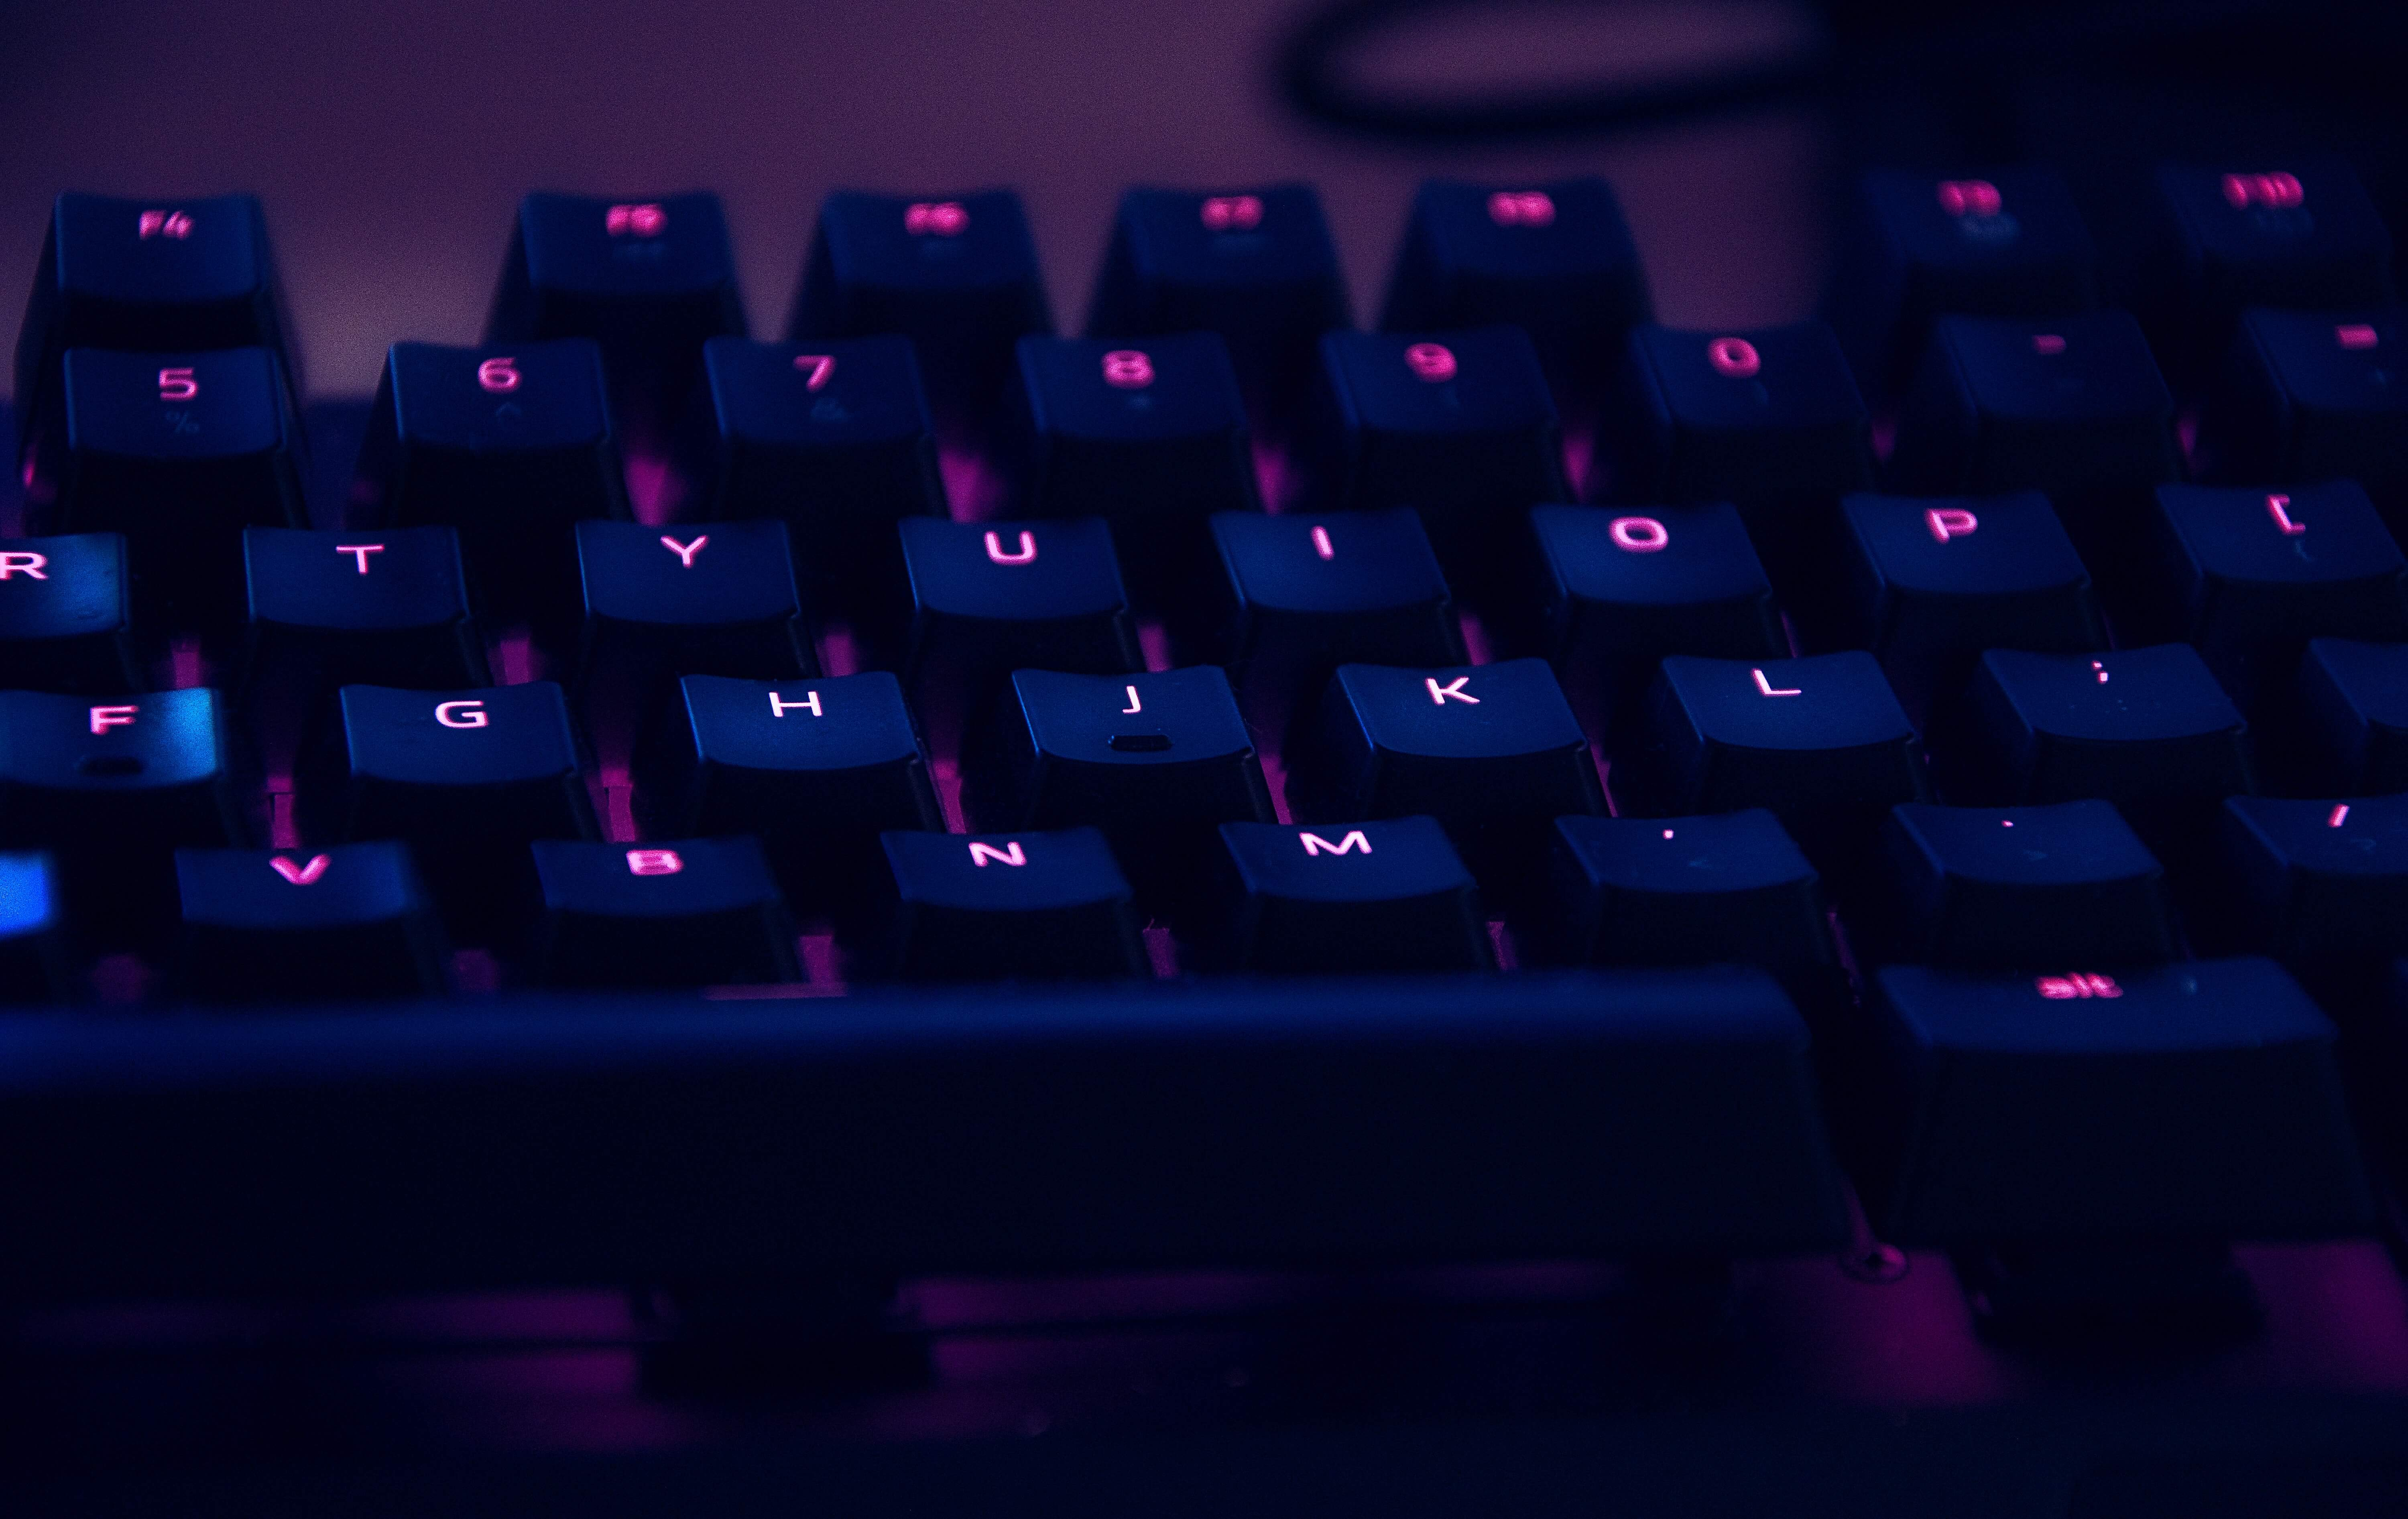 web-design-agency-photography-space66-tech-keyboard